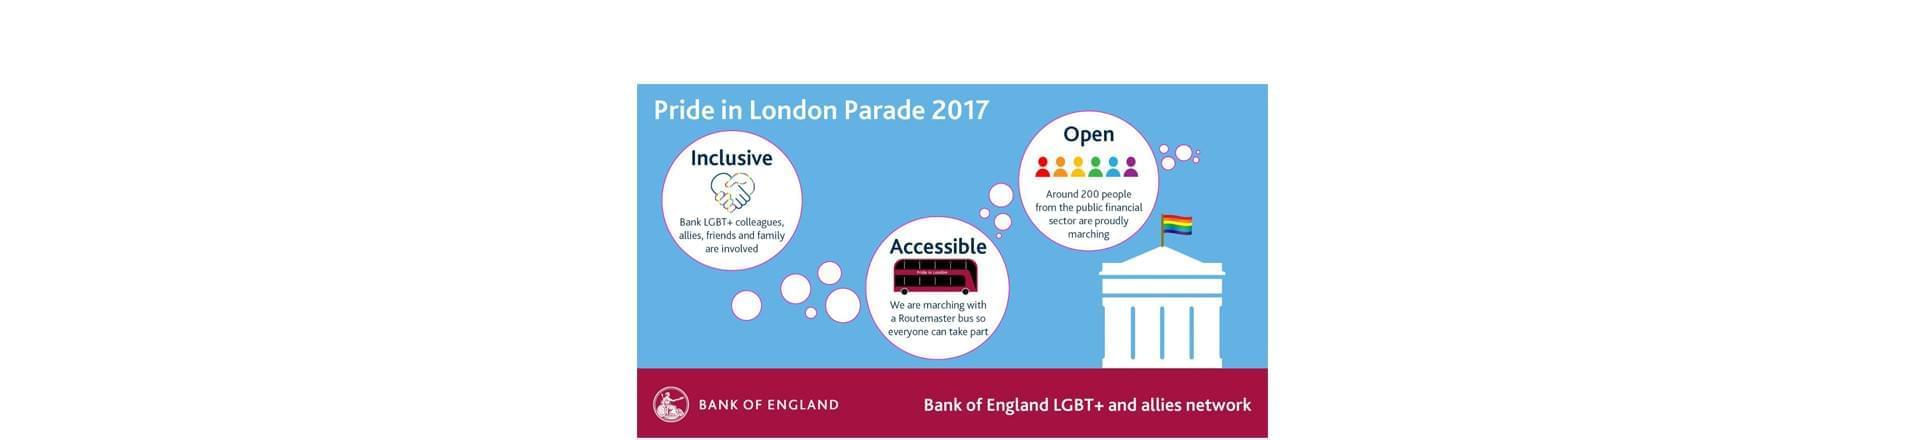 Bank of England Logo with the text 'Bank of England LGBT and allies Network. Pride in London Parade 2017. Inclusive, Bank LGBT+ colleagues, allies, friends and family are involved. Accessible, We are marching with a Routemaster bus so everyone can take part. Open, Around 200 people from the public financial sector are proudly marching.'